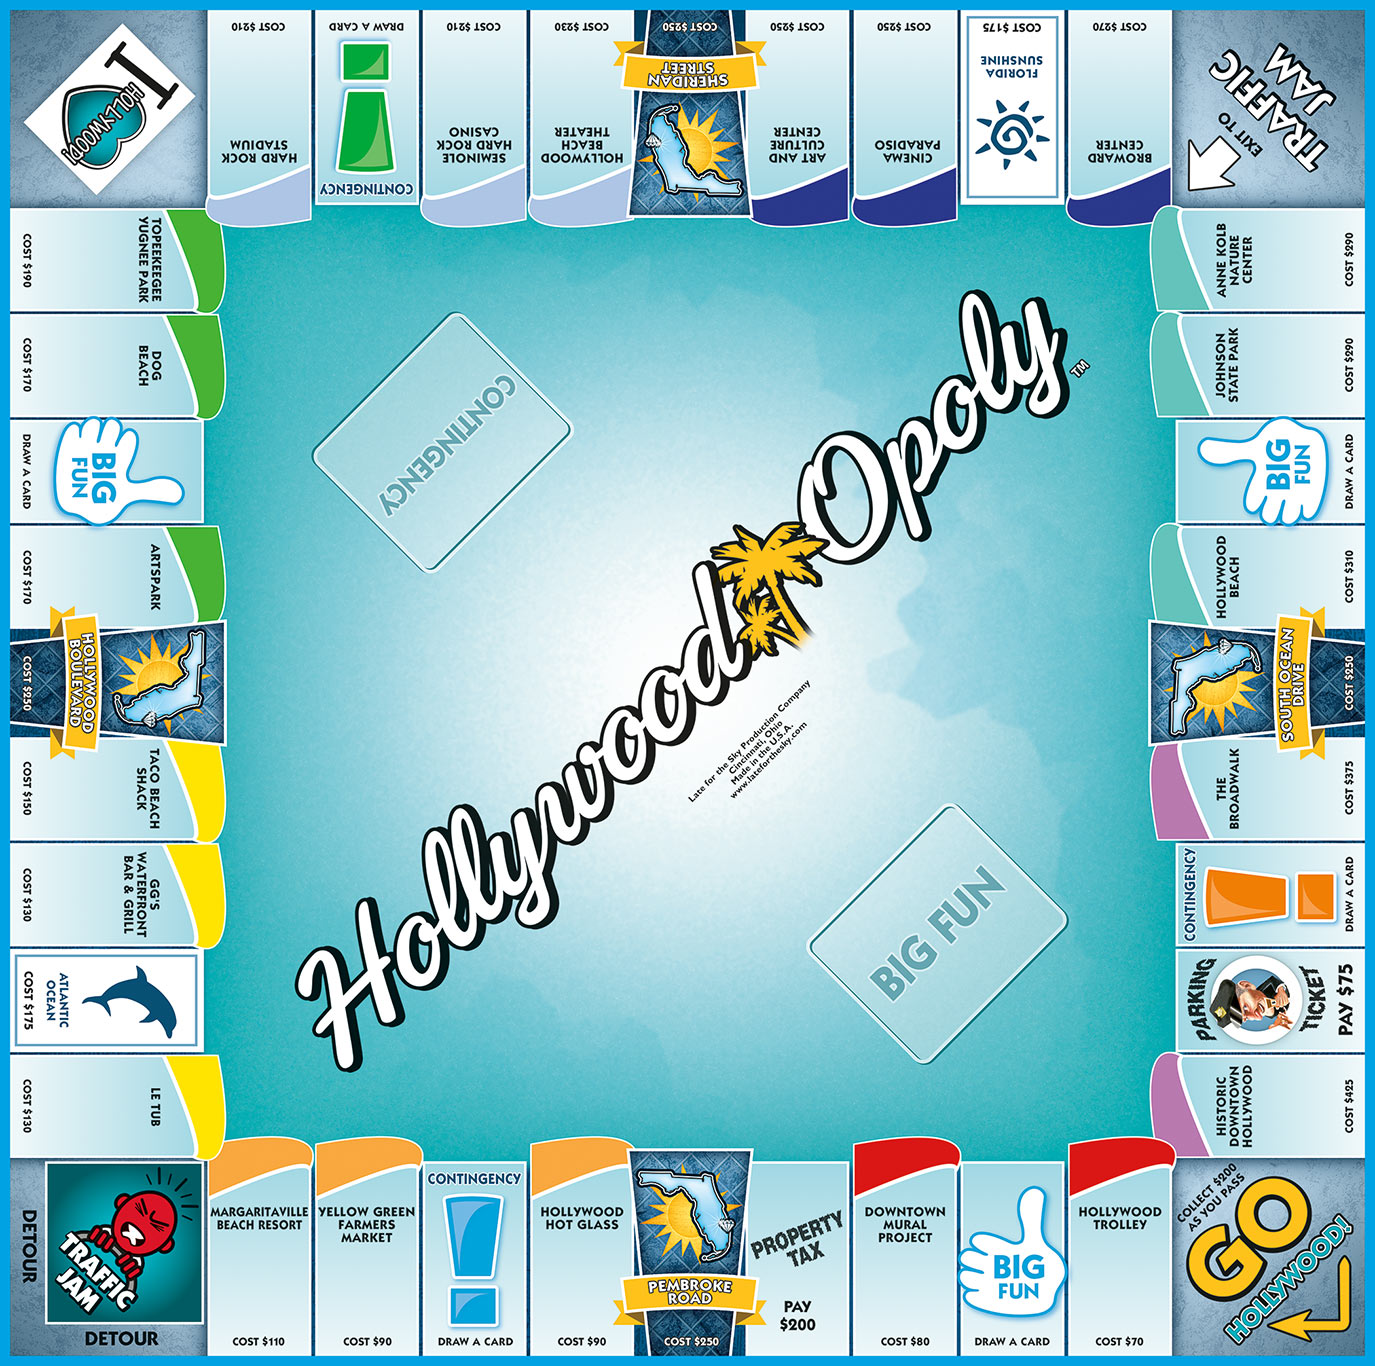 HOLLYWOOD-OPOLY Board Game